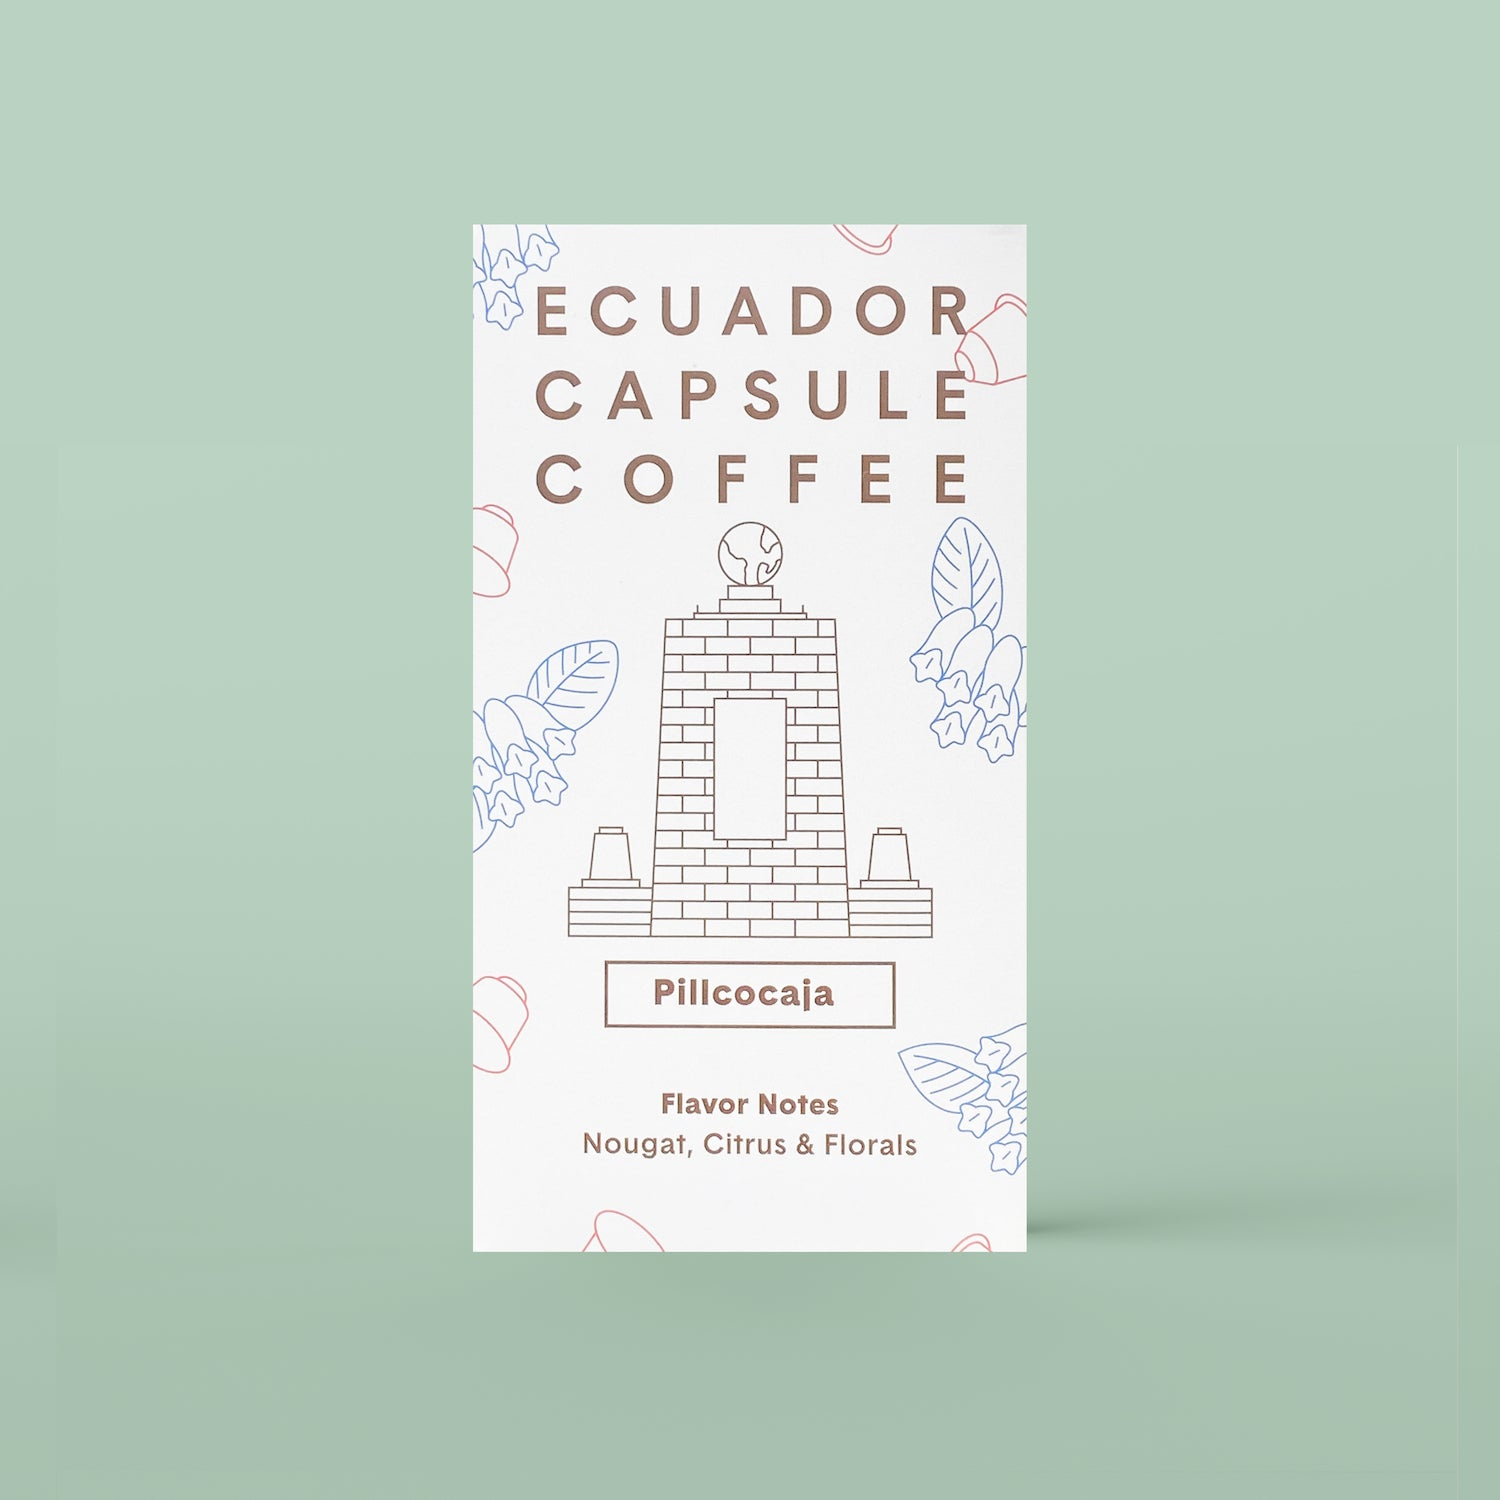 Ecuador Compostable Coffee Capsule